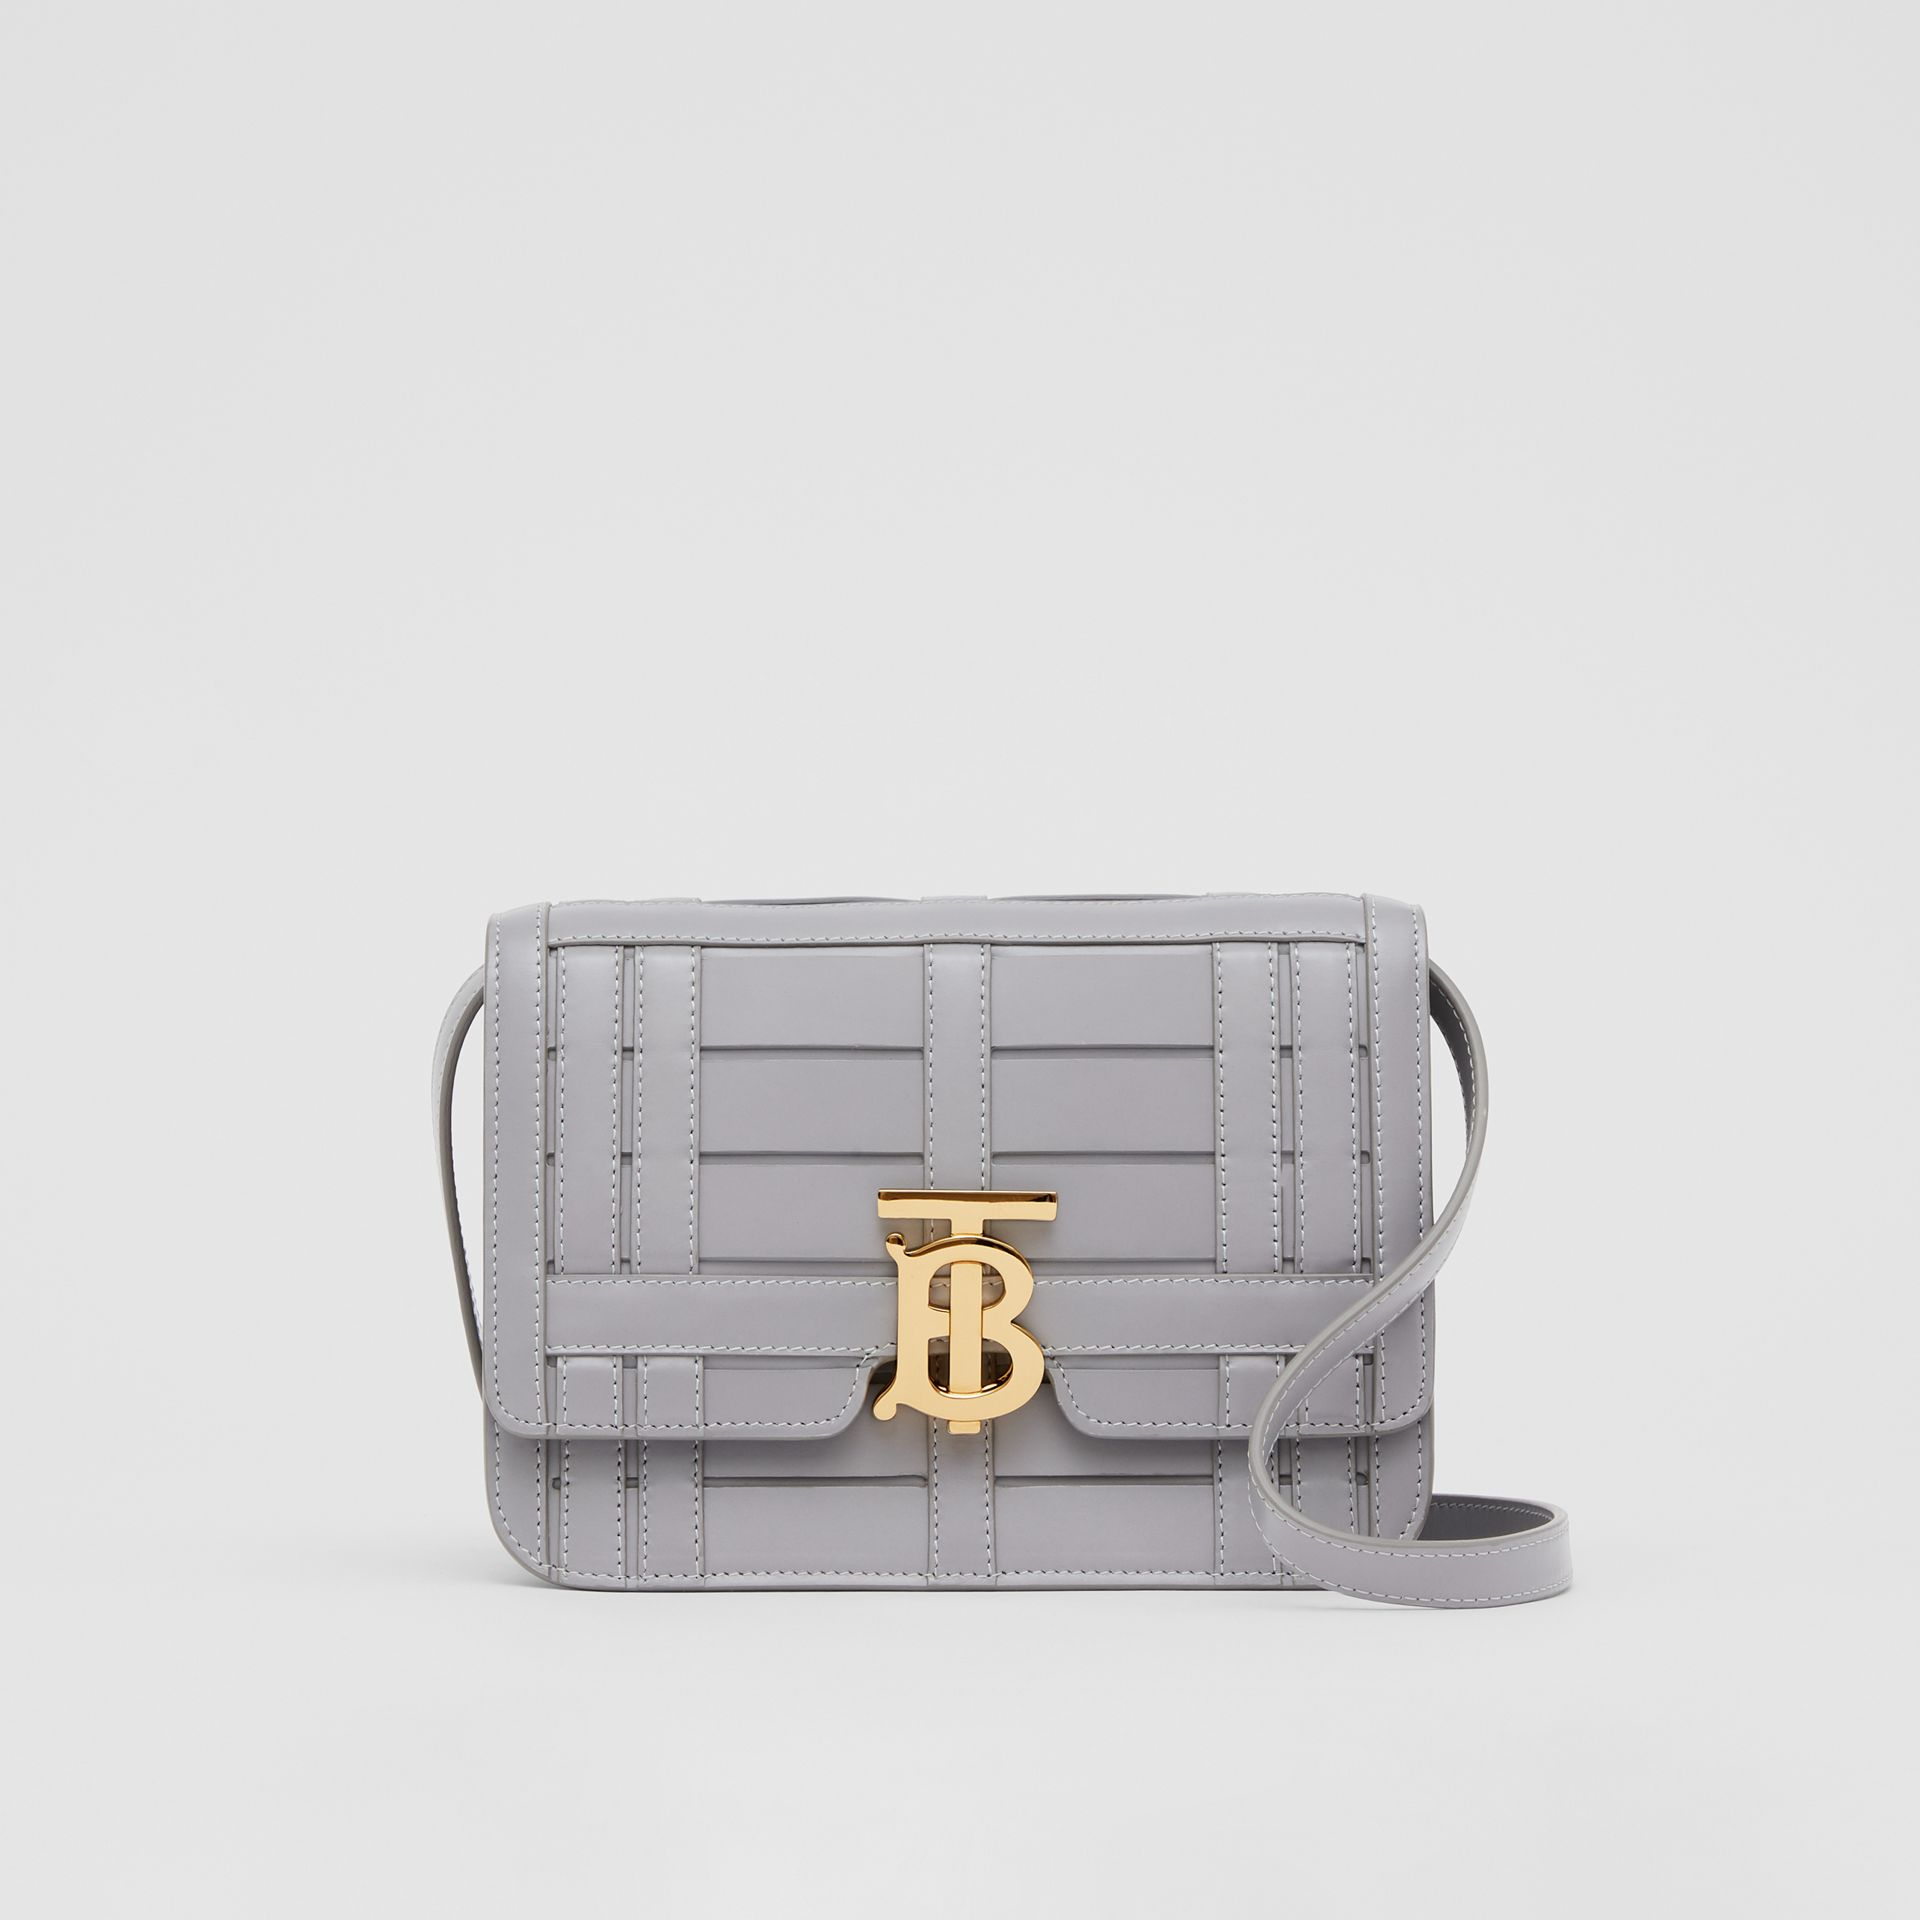 Small Woven Leather TB Bag in Cloud Grey - Women | Burberry United Kingdom - gallery image 0